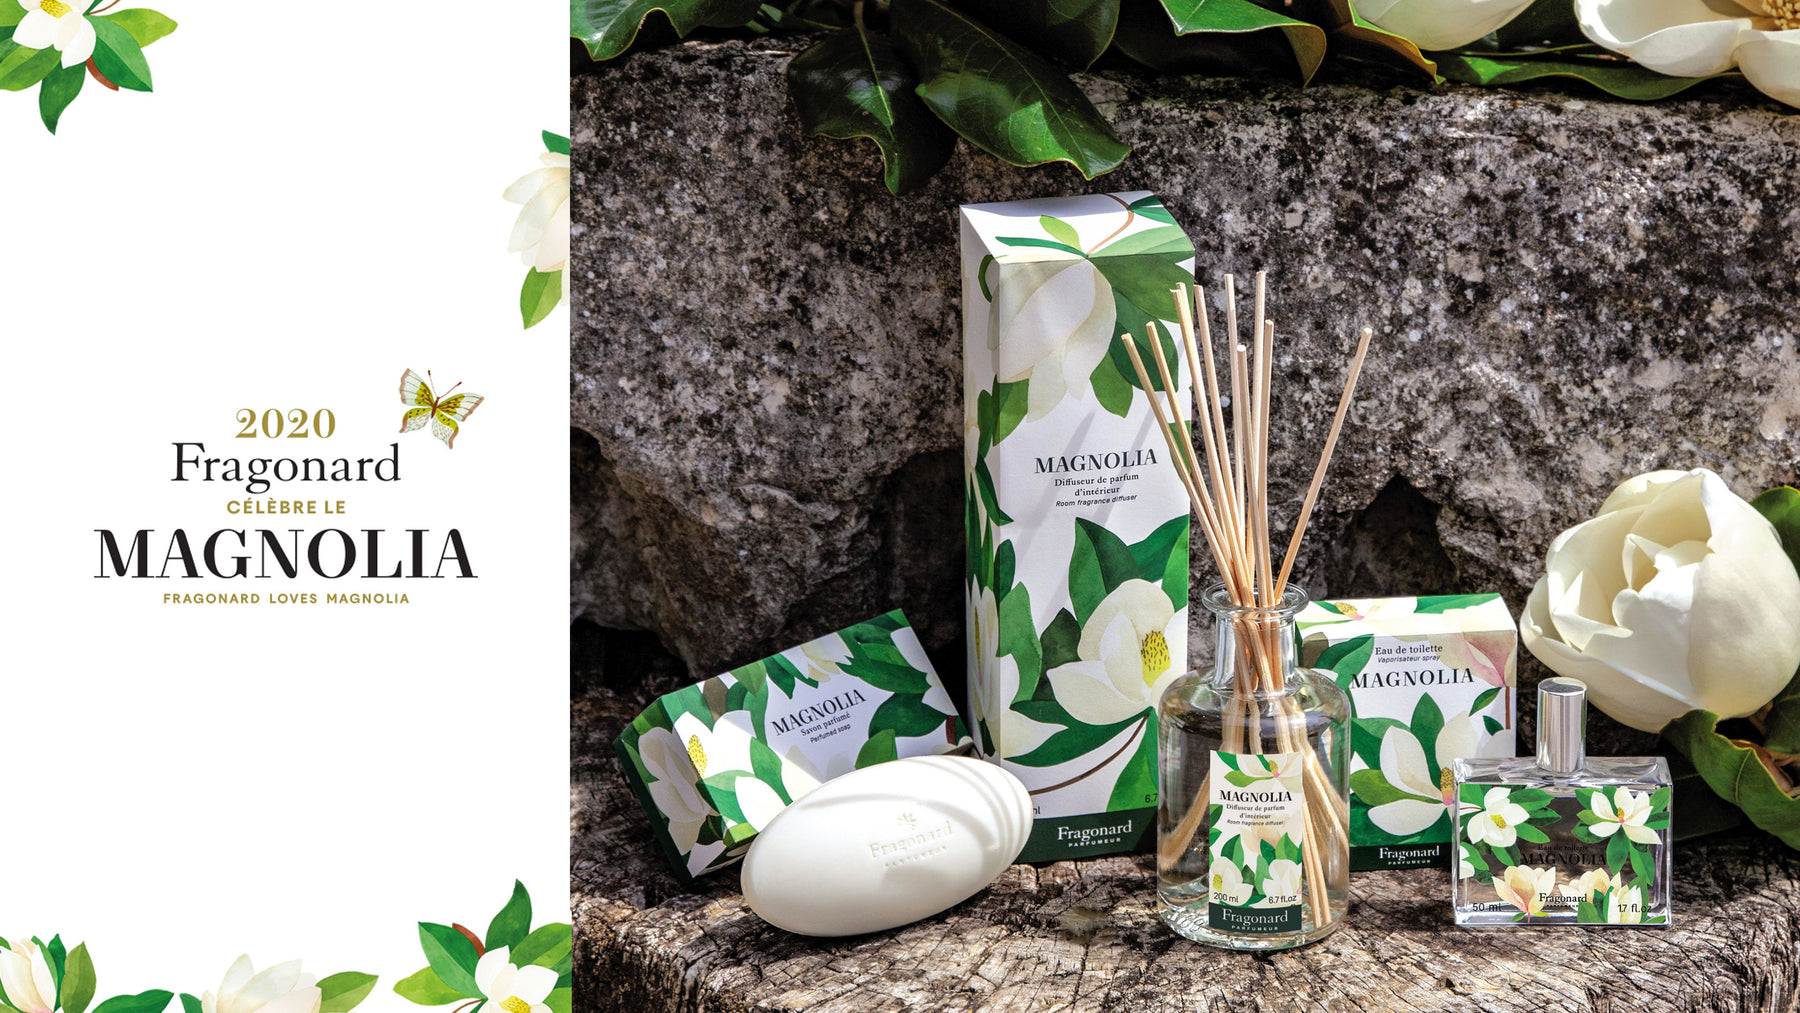 Fragonard Parfumeur Magnolia Collection Includes Eau de Toilette, Diffuser, Pebble Soap and Set of 4 Guest Soaps